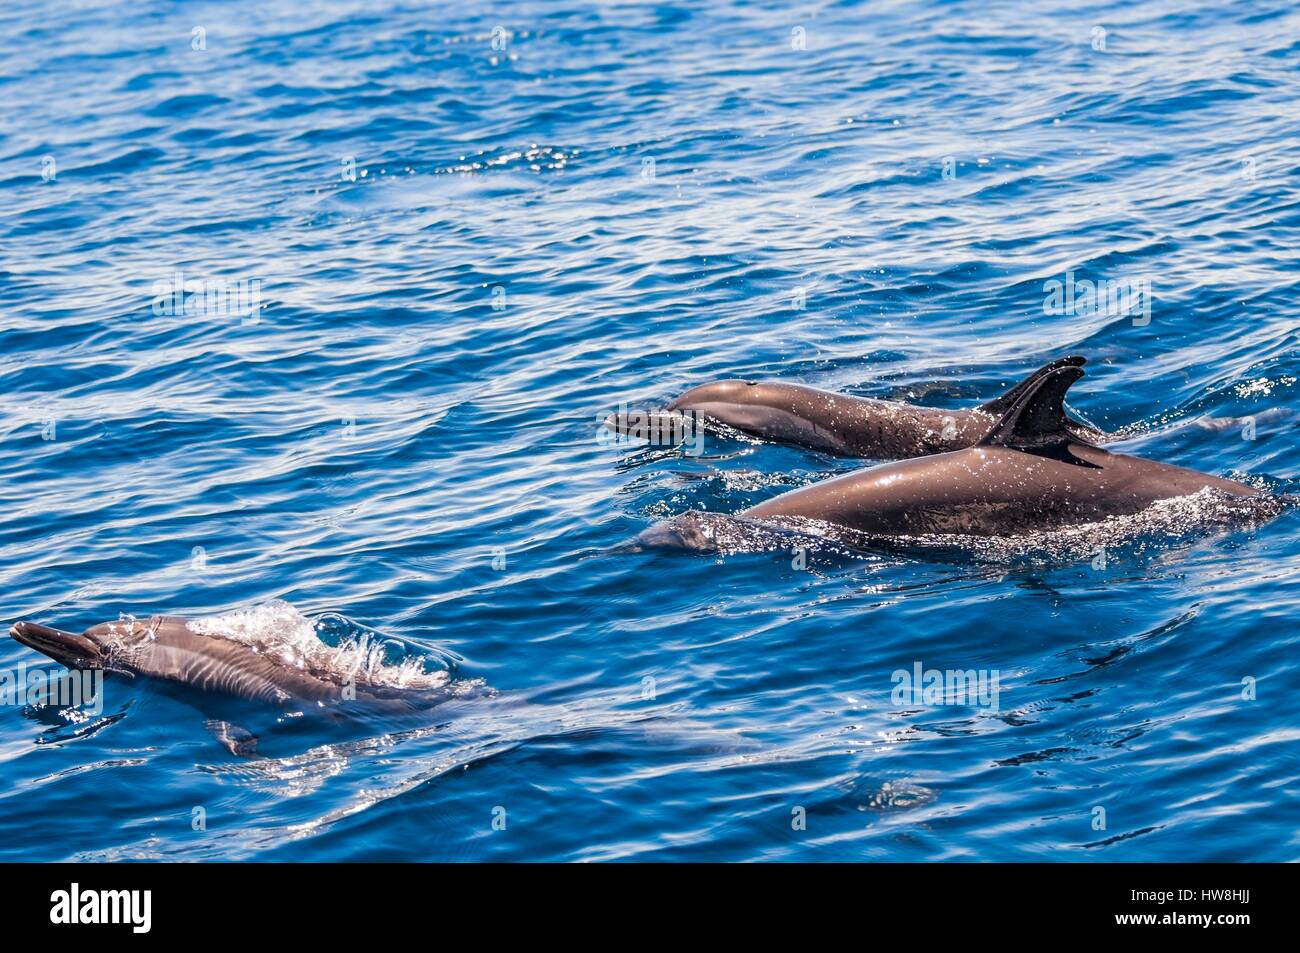 France, Mayotte island (French overseas department), spotted dolphins (Stenella attenuata) in the lagoon - Stock Image